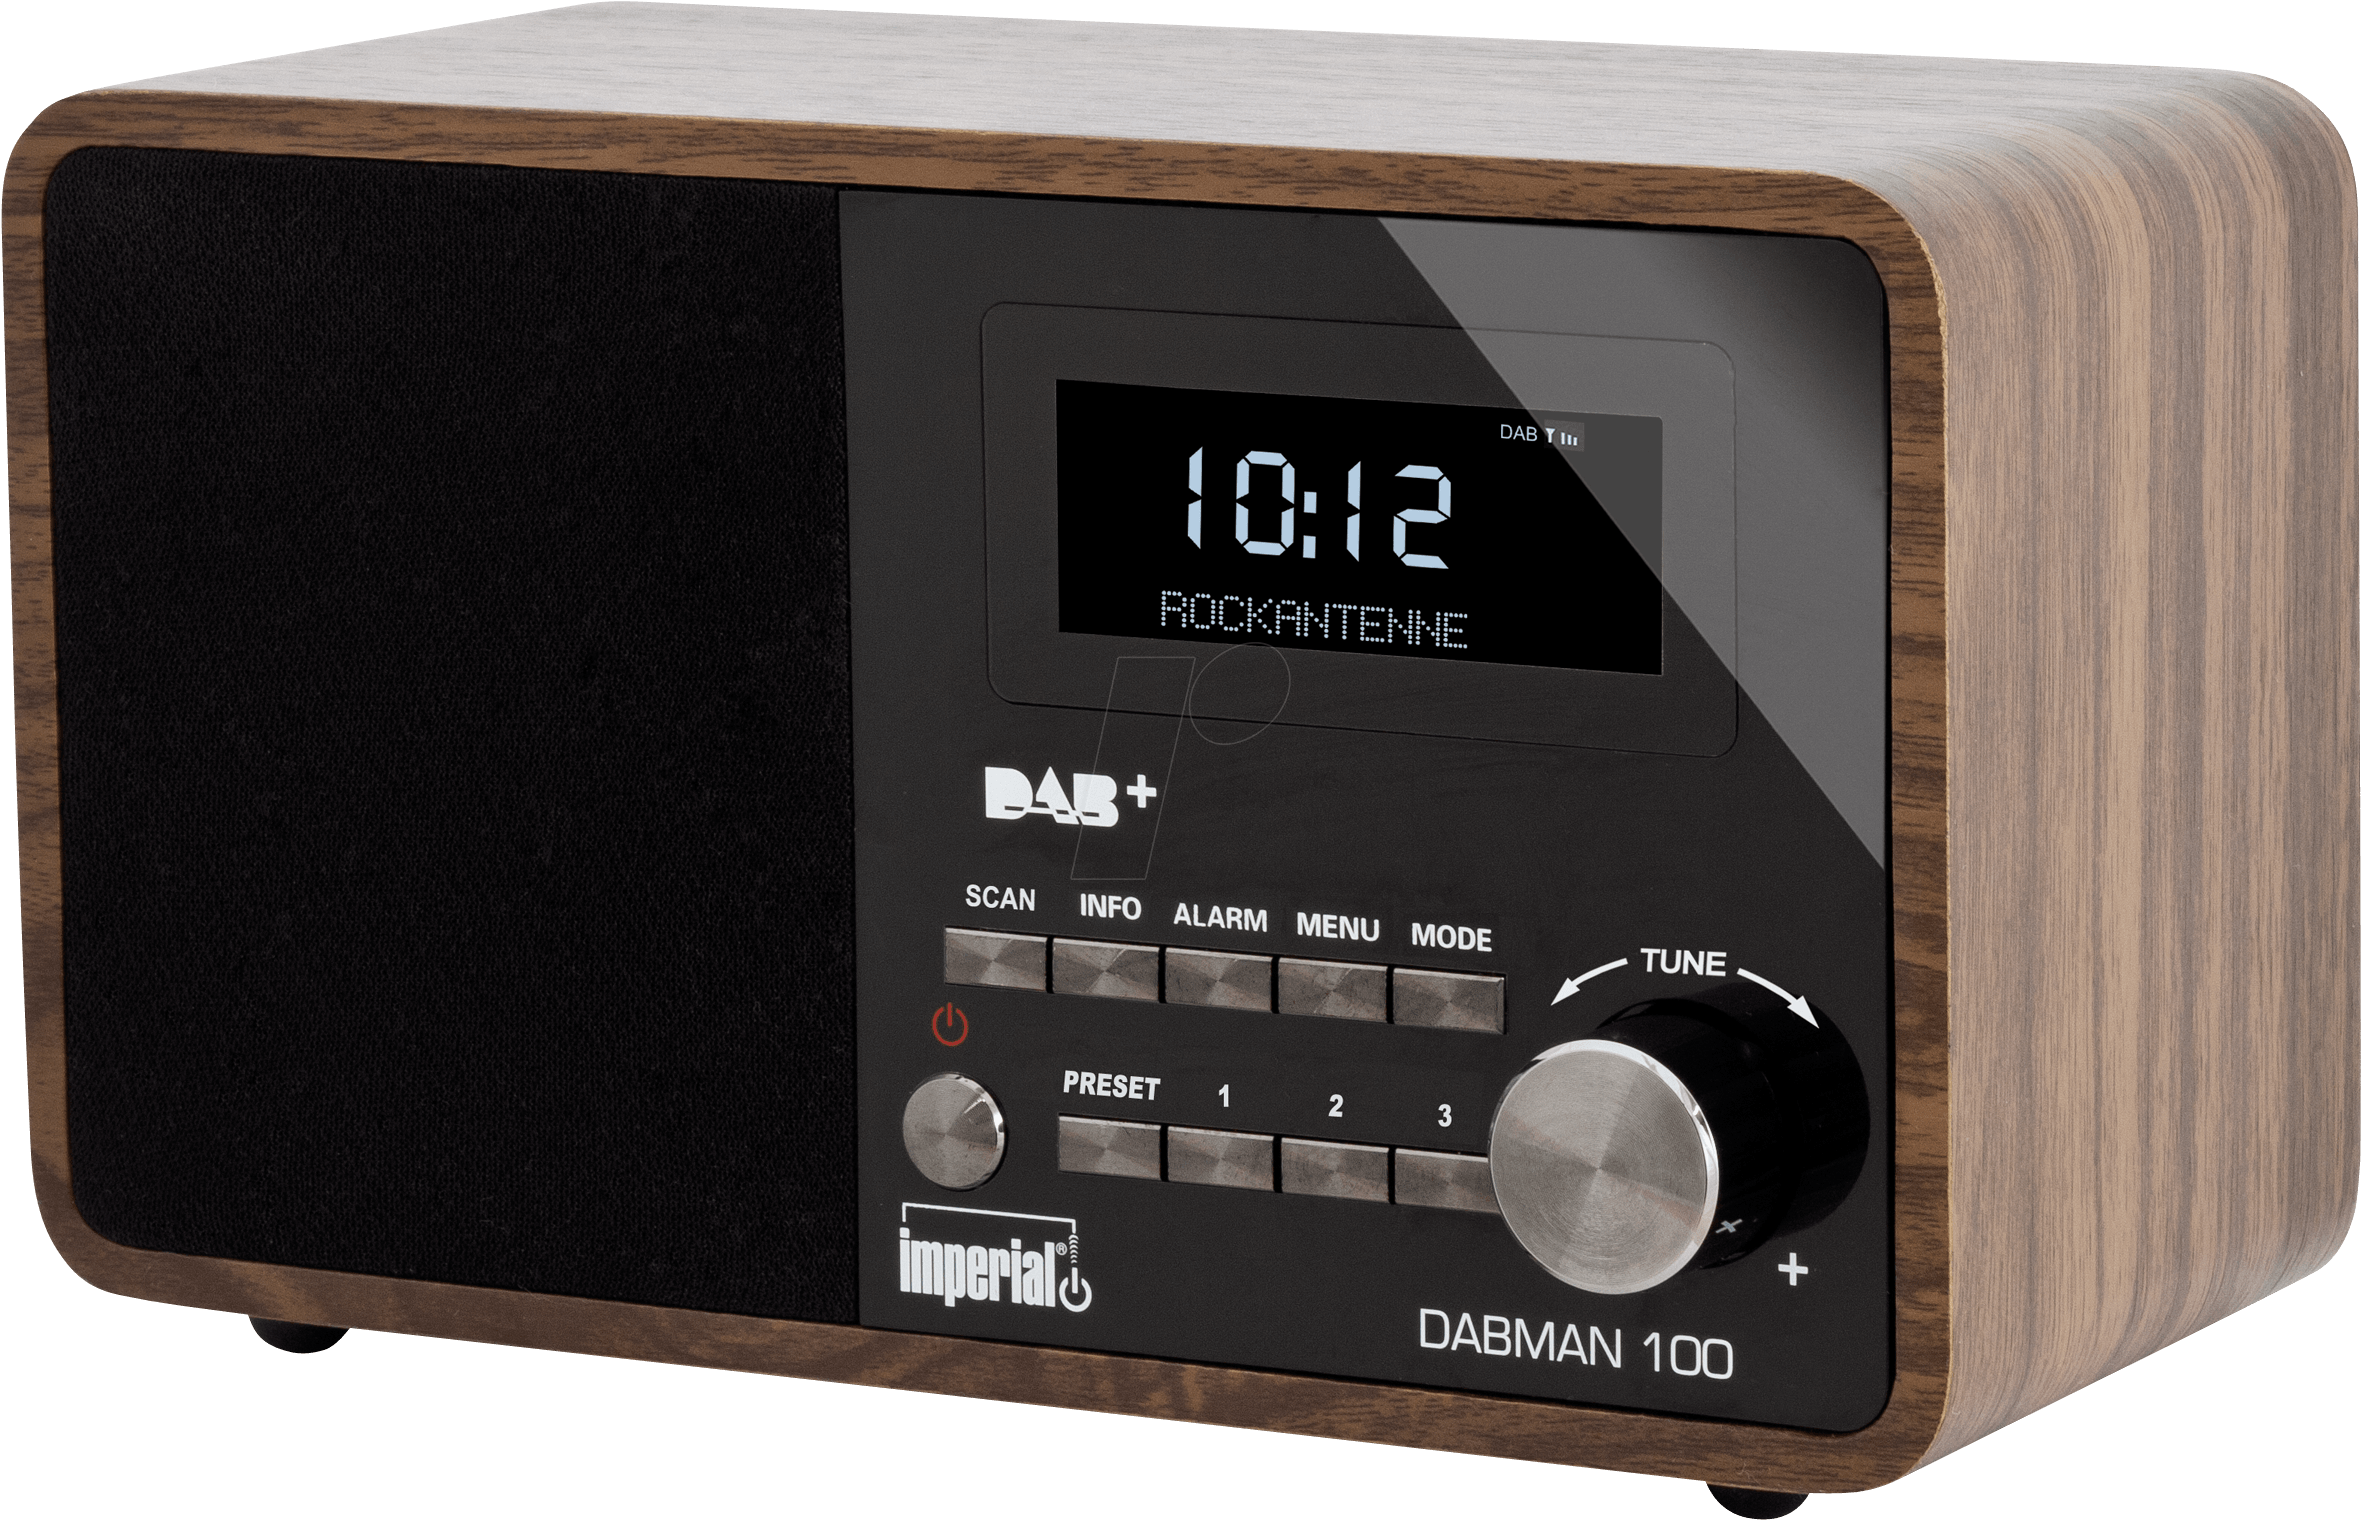 dabman 100nb dab dab ukw radio bei reichelt elektronik. Black Bedroom Furniture Sets. Home Design Ideas